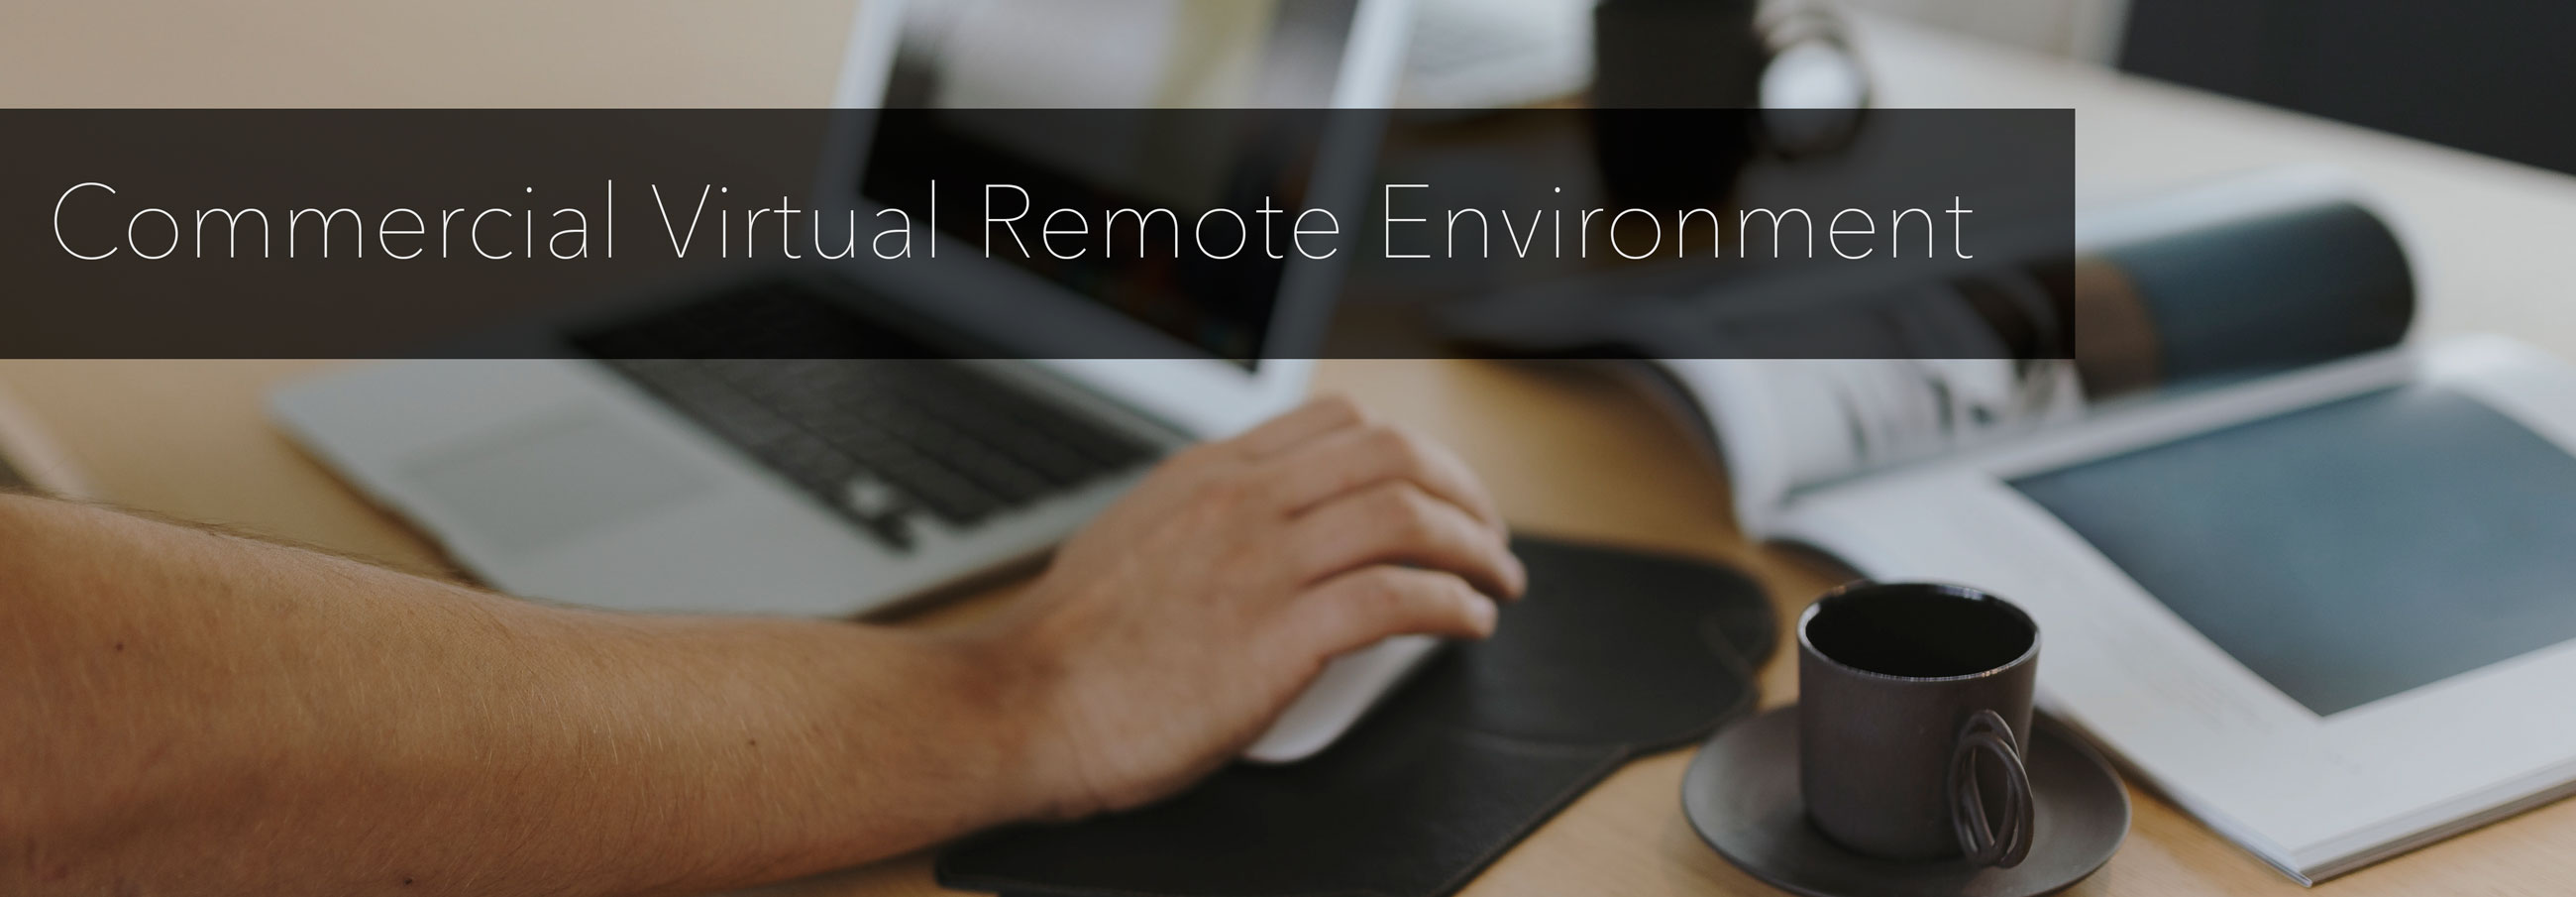 Commercial Virtual Remote Environment